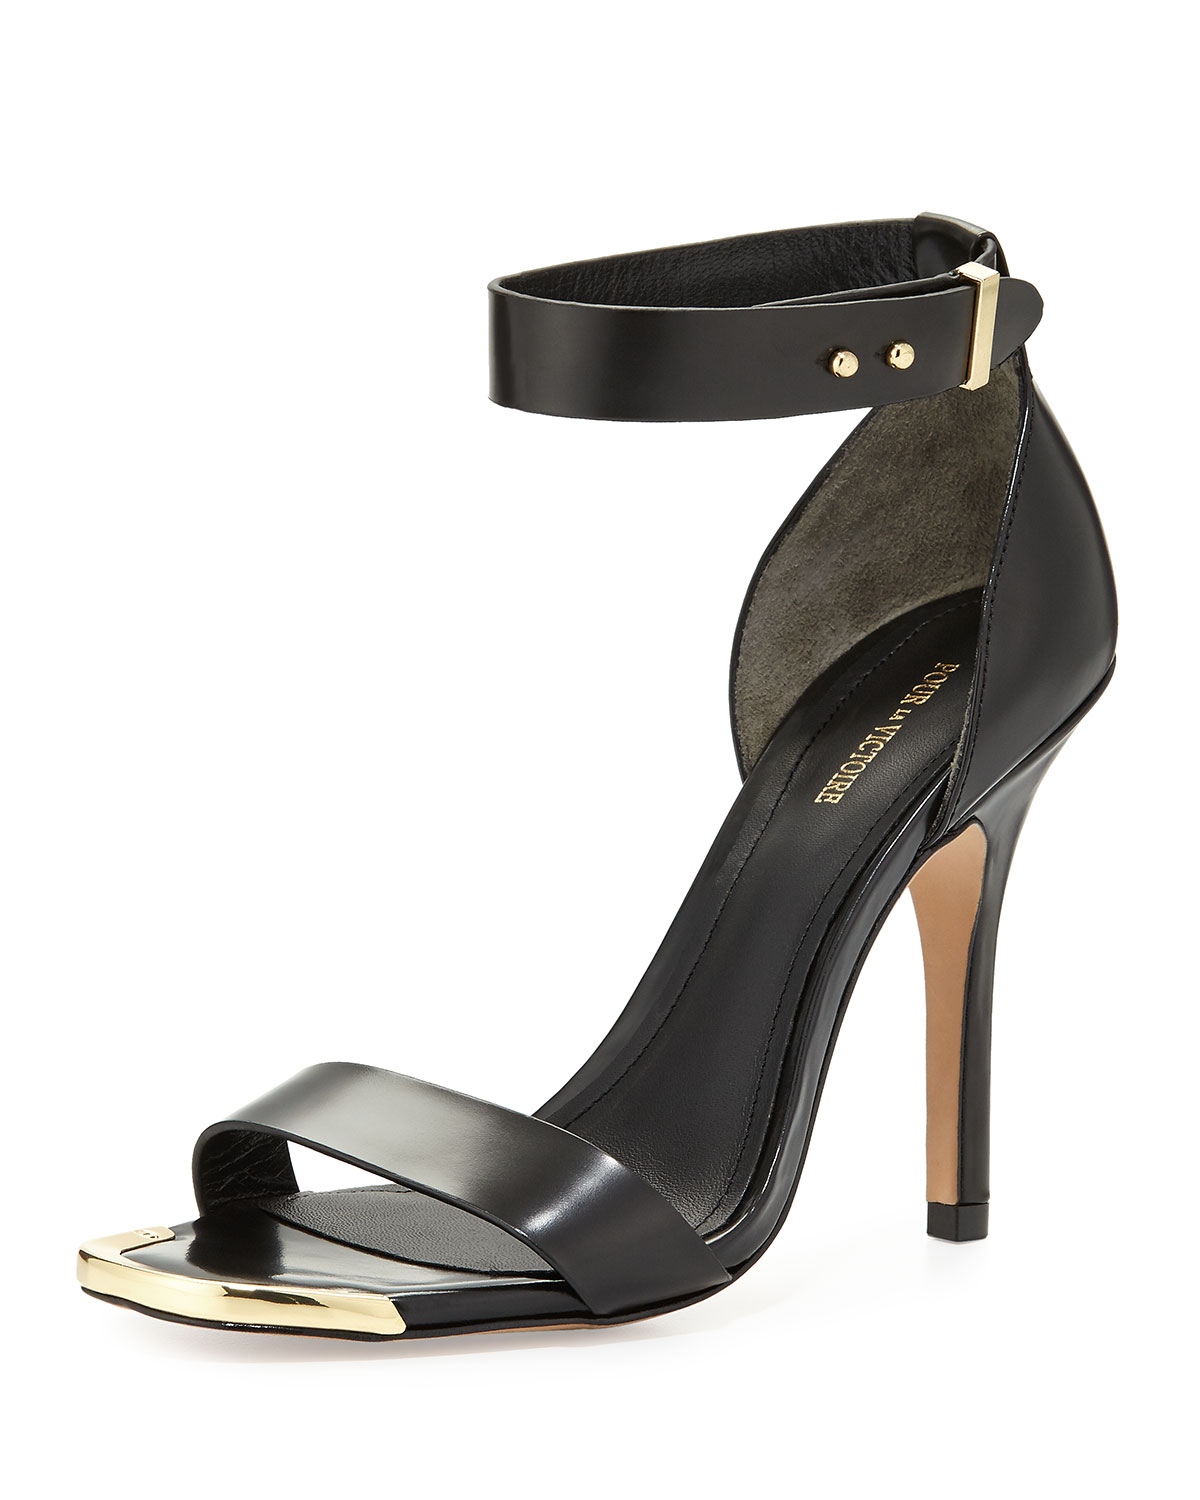 Yaya Leather Ankle-Wrap Sandal, Black, Size: 35.5B/5.5B - Pour la Victoire